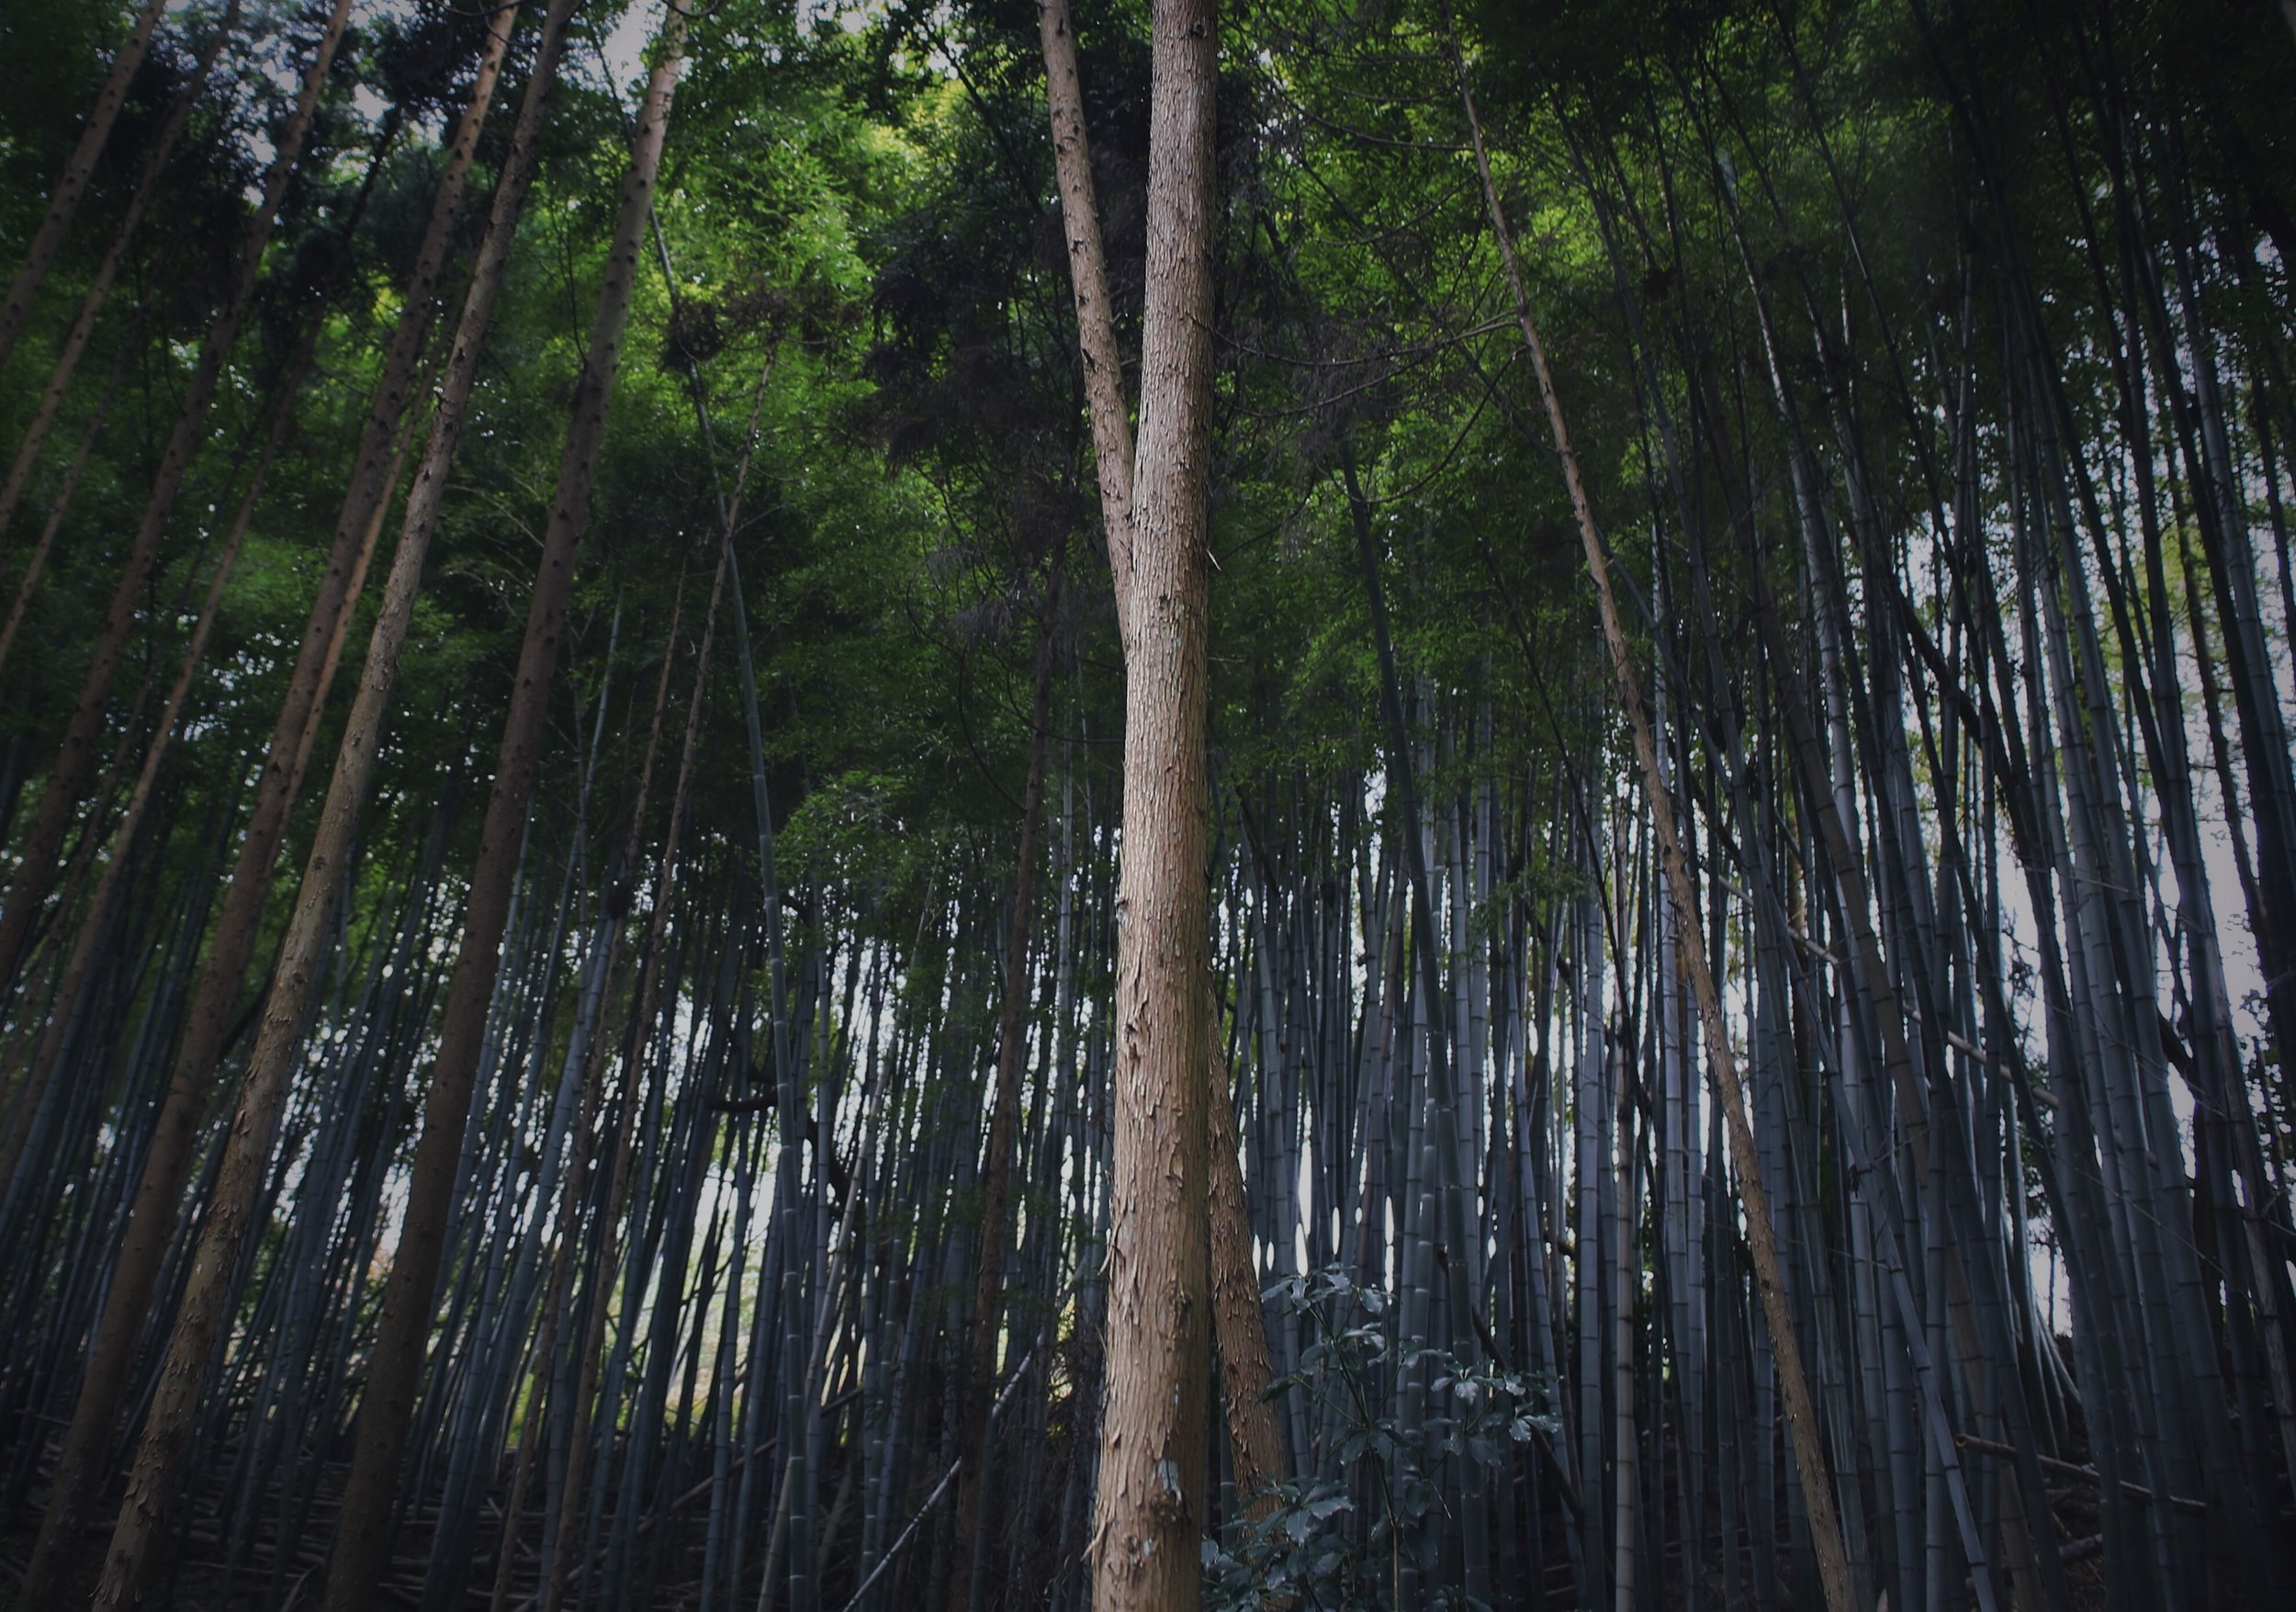 The depth of bamboo forests, Kyoto, 2017. Shot on Canon 6D with 24-70mm